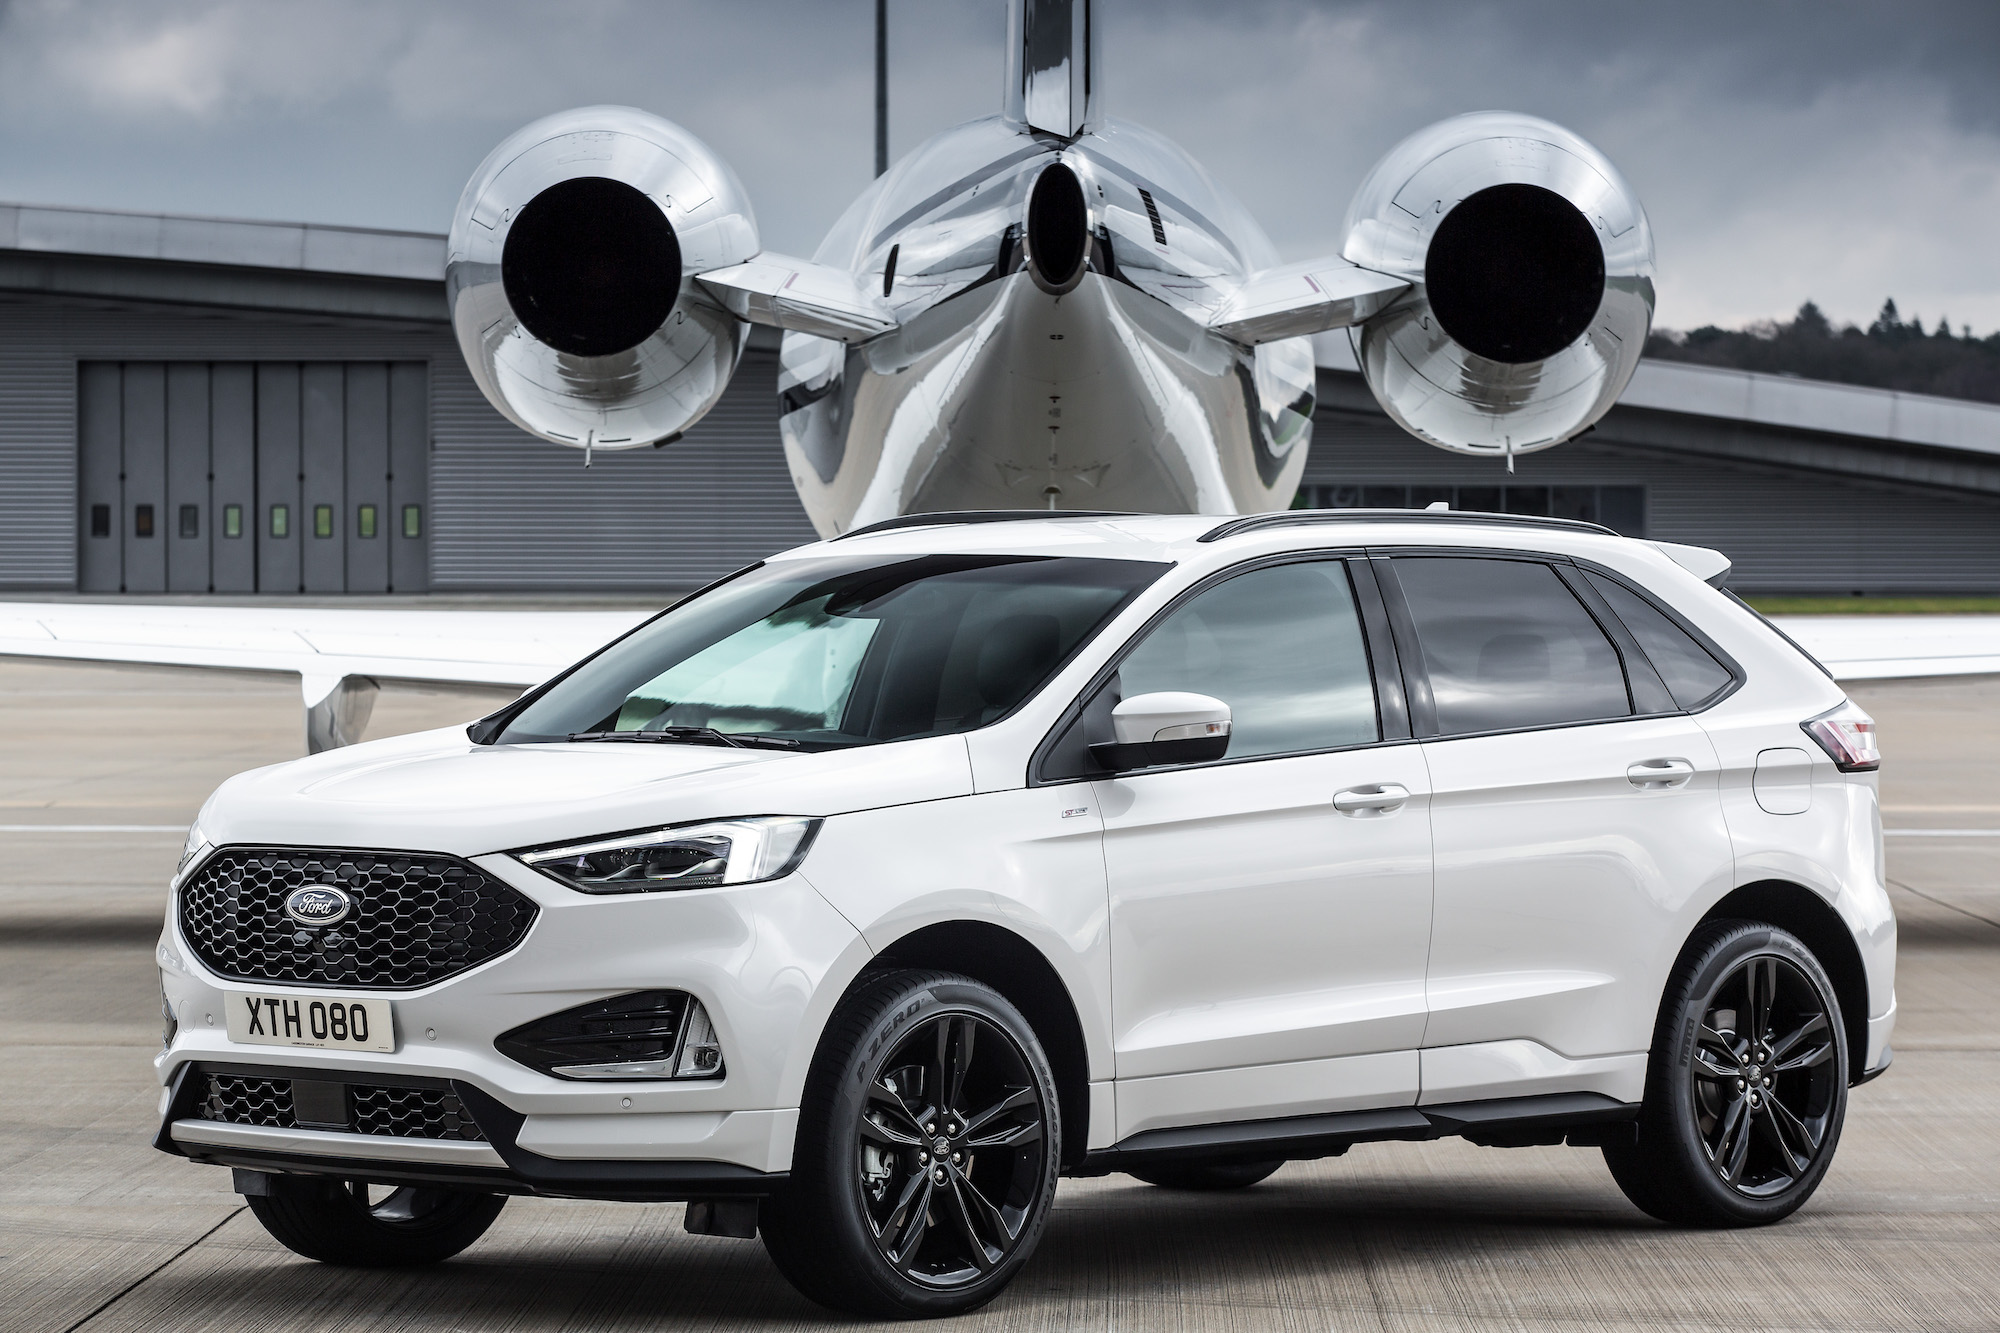 Facelifted Ford Edge Arrives In Europe With New Bi-Turbo Diesel